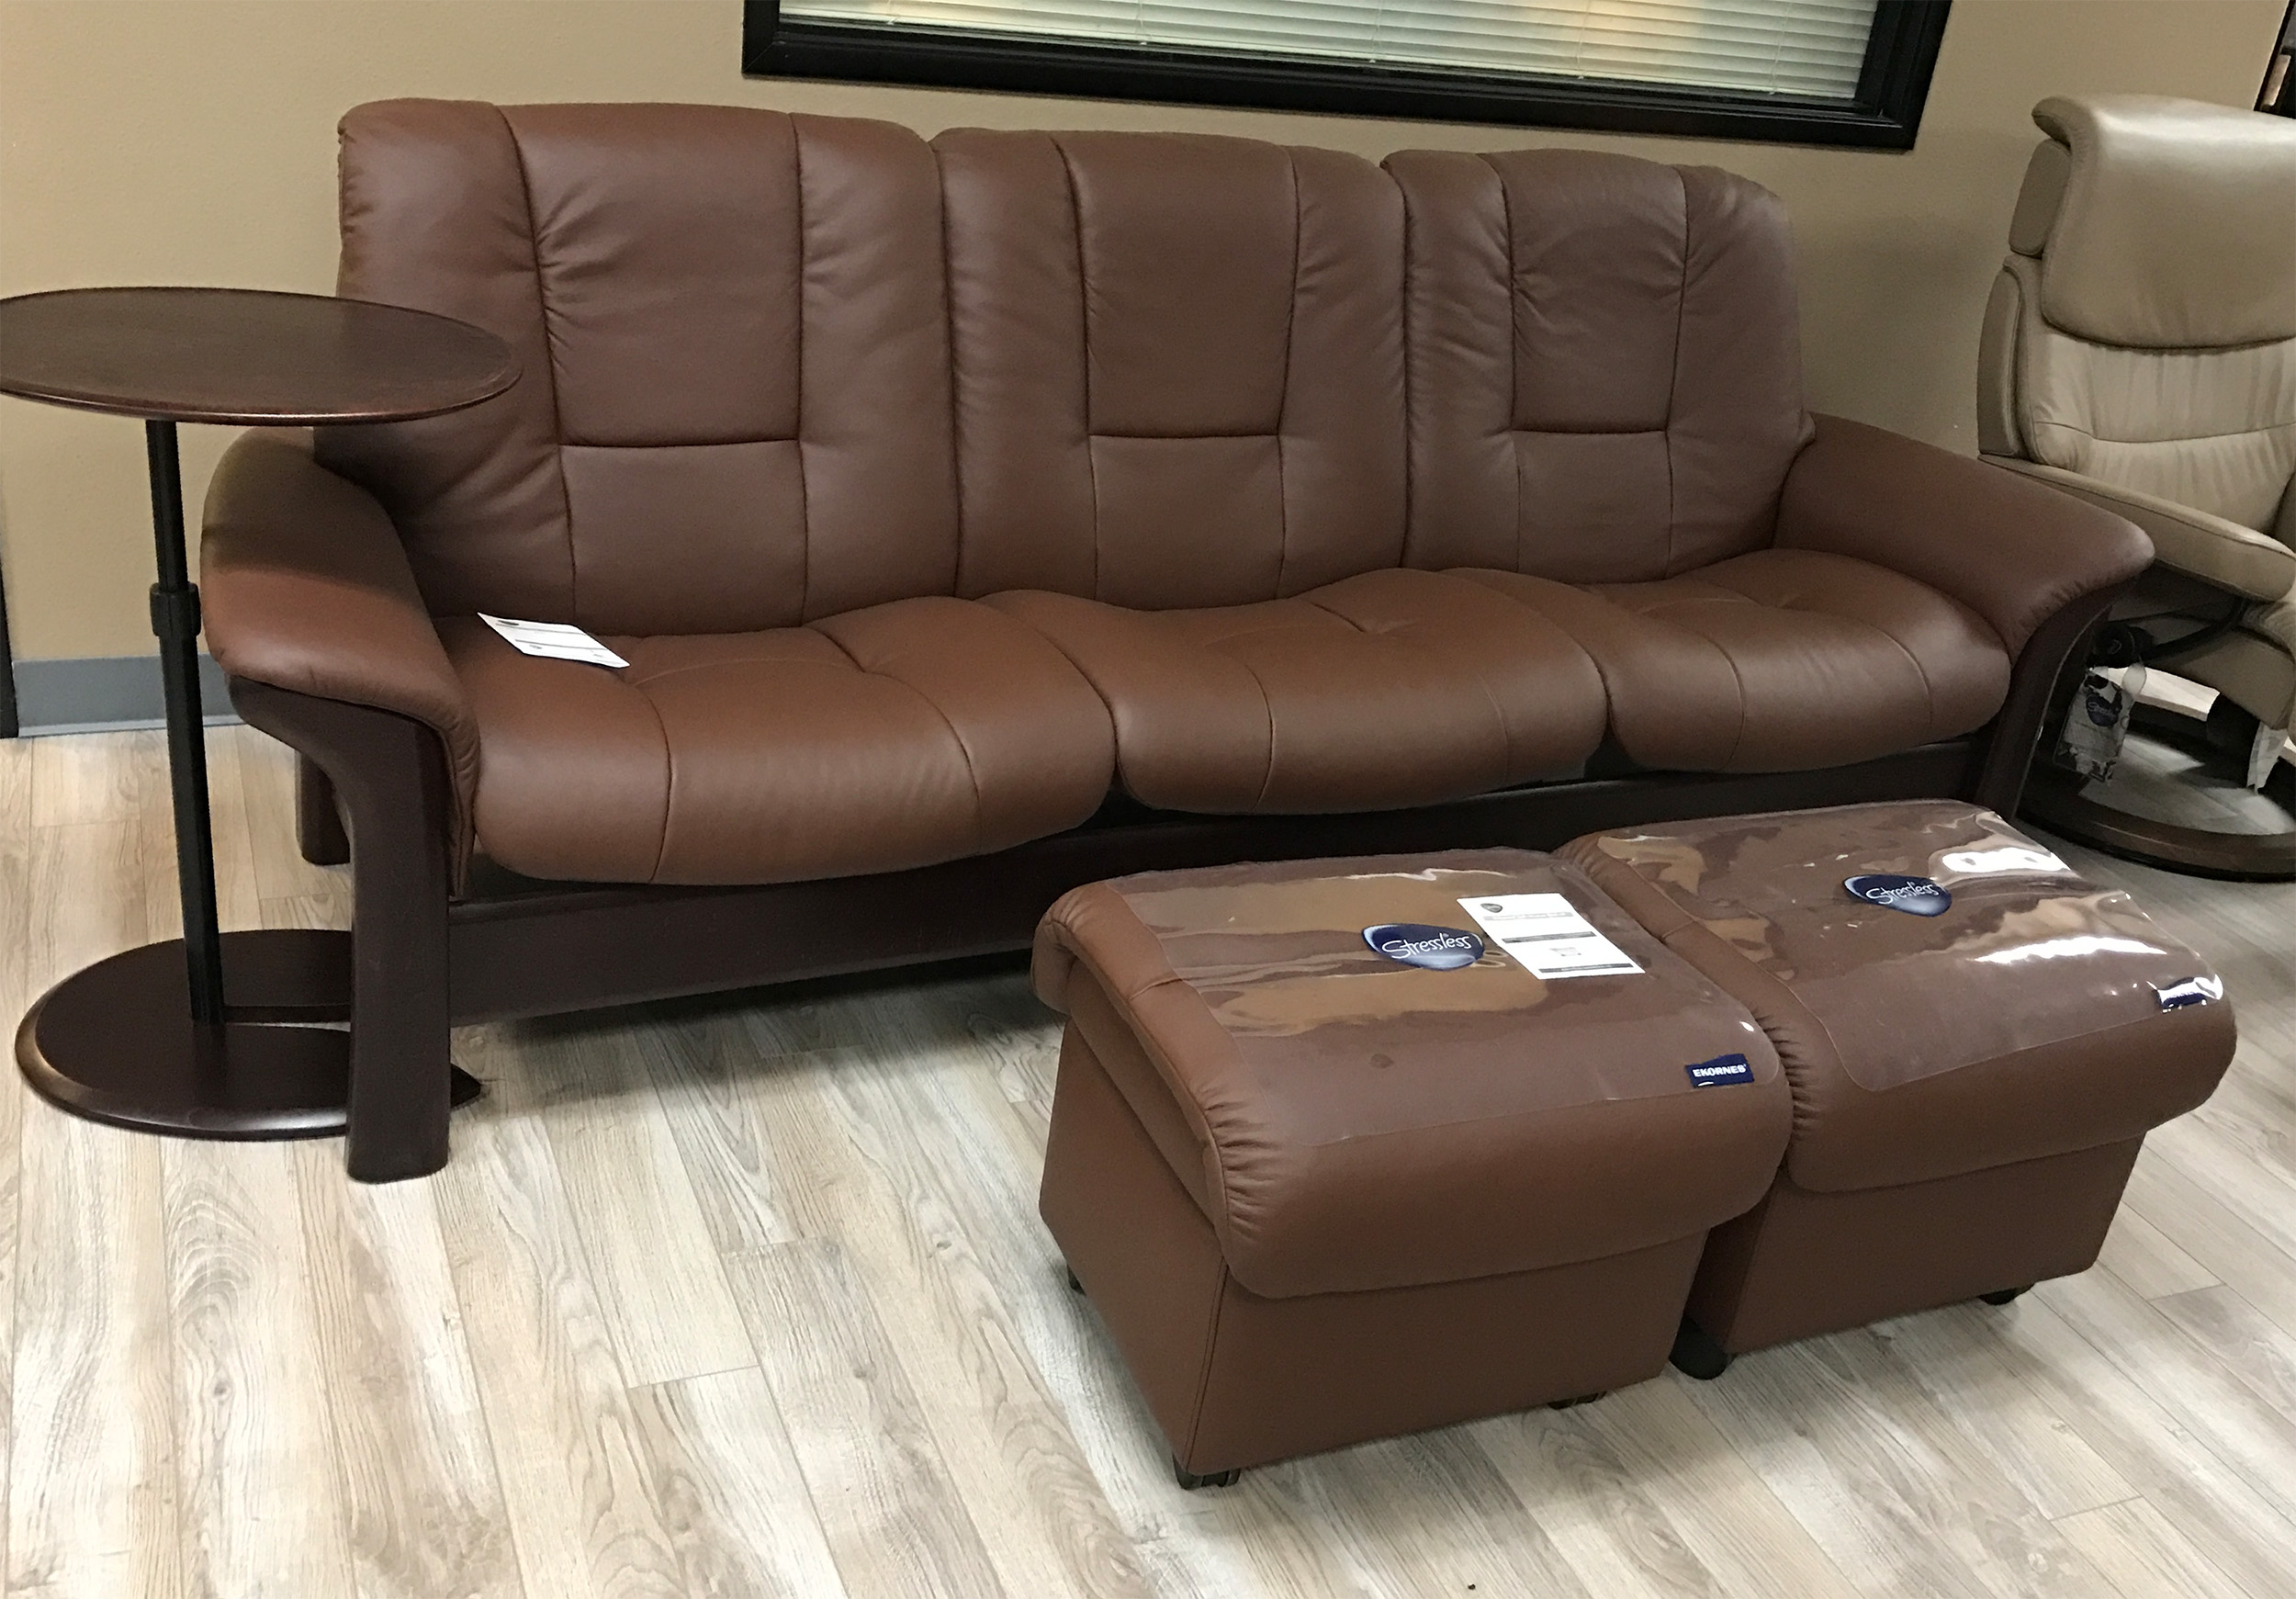 Stressless Buckingham 3 Seat Low Back Sofa Paloma Brown Leather